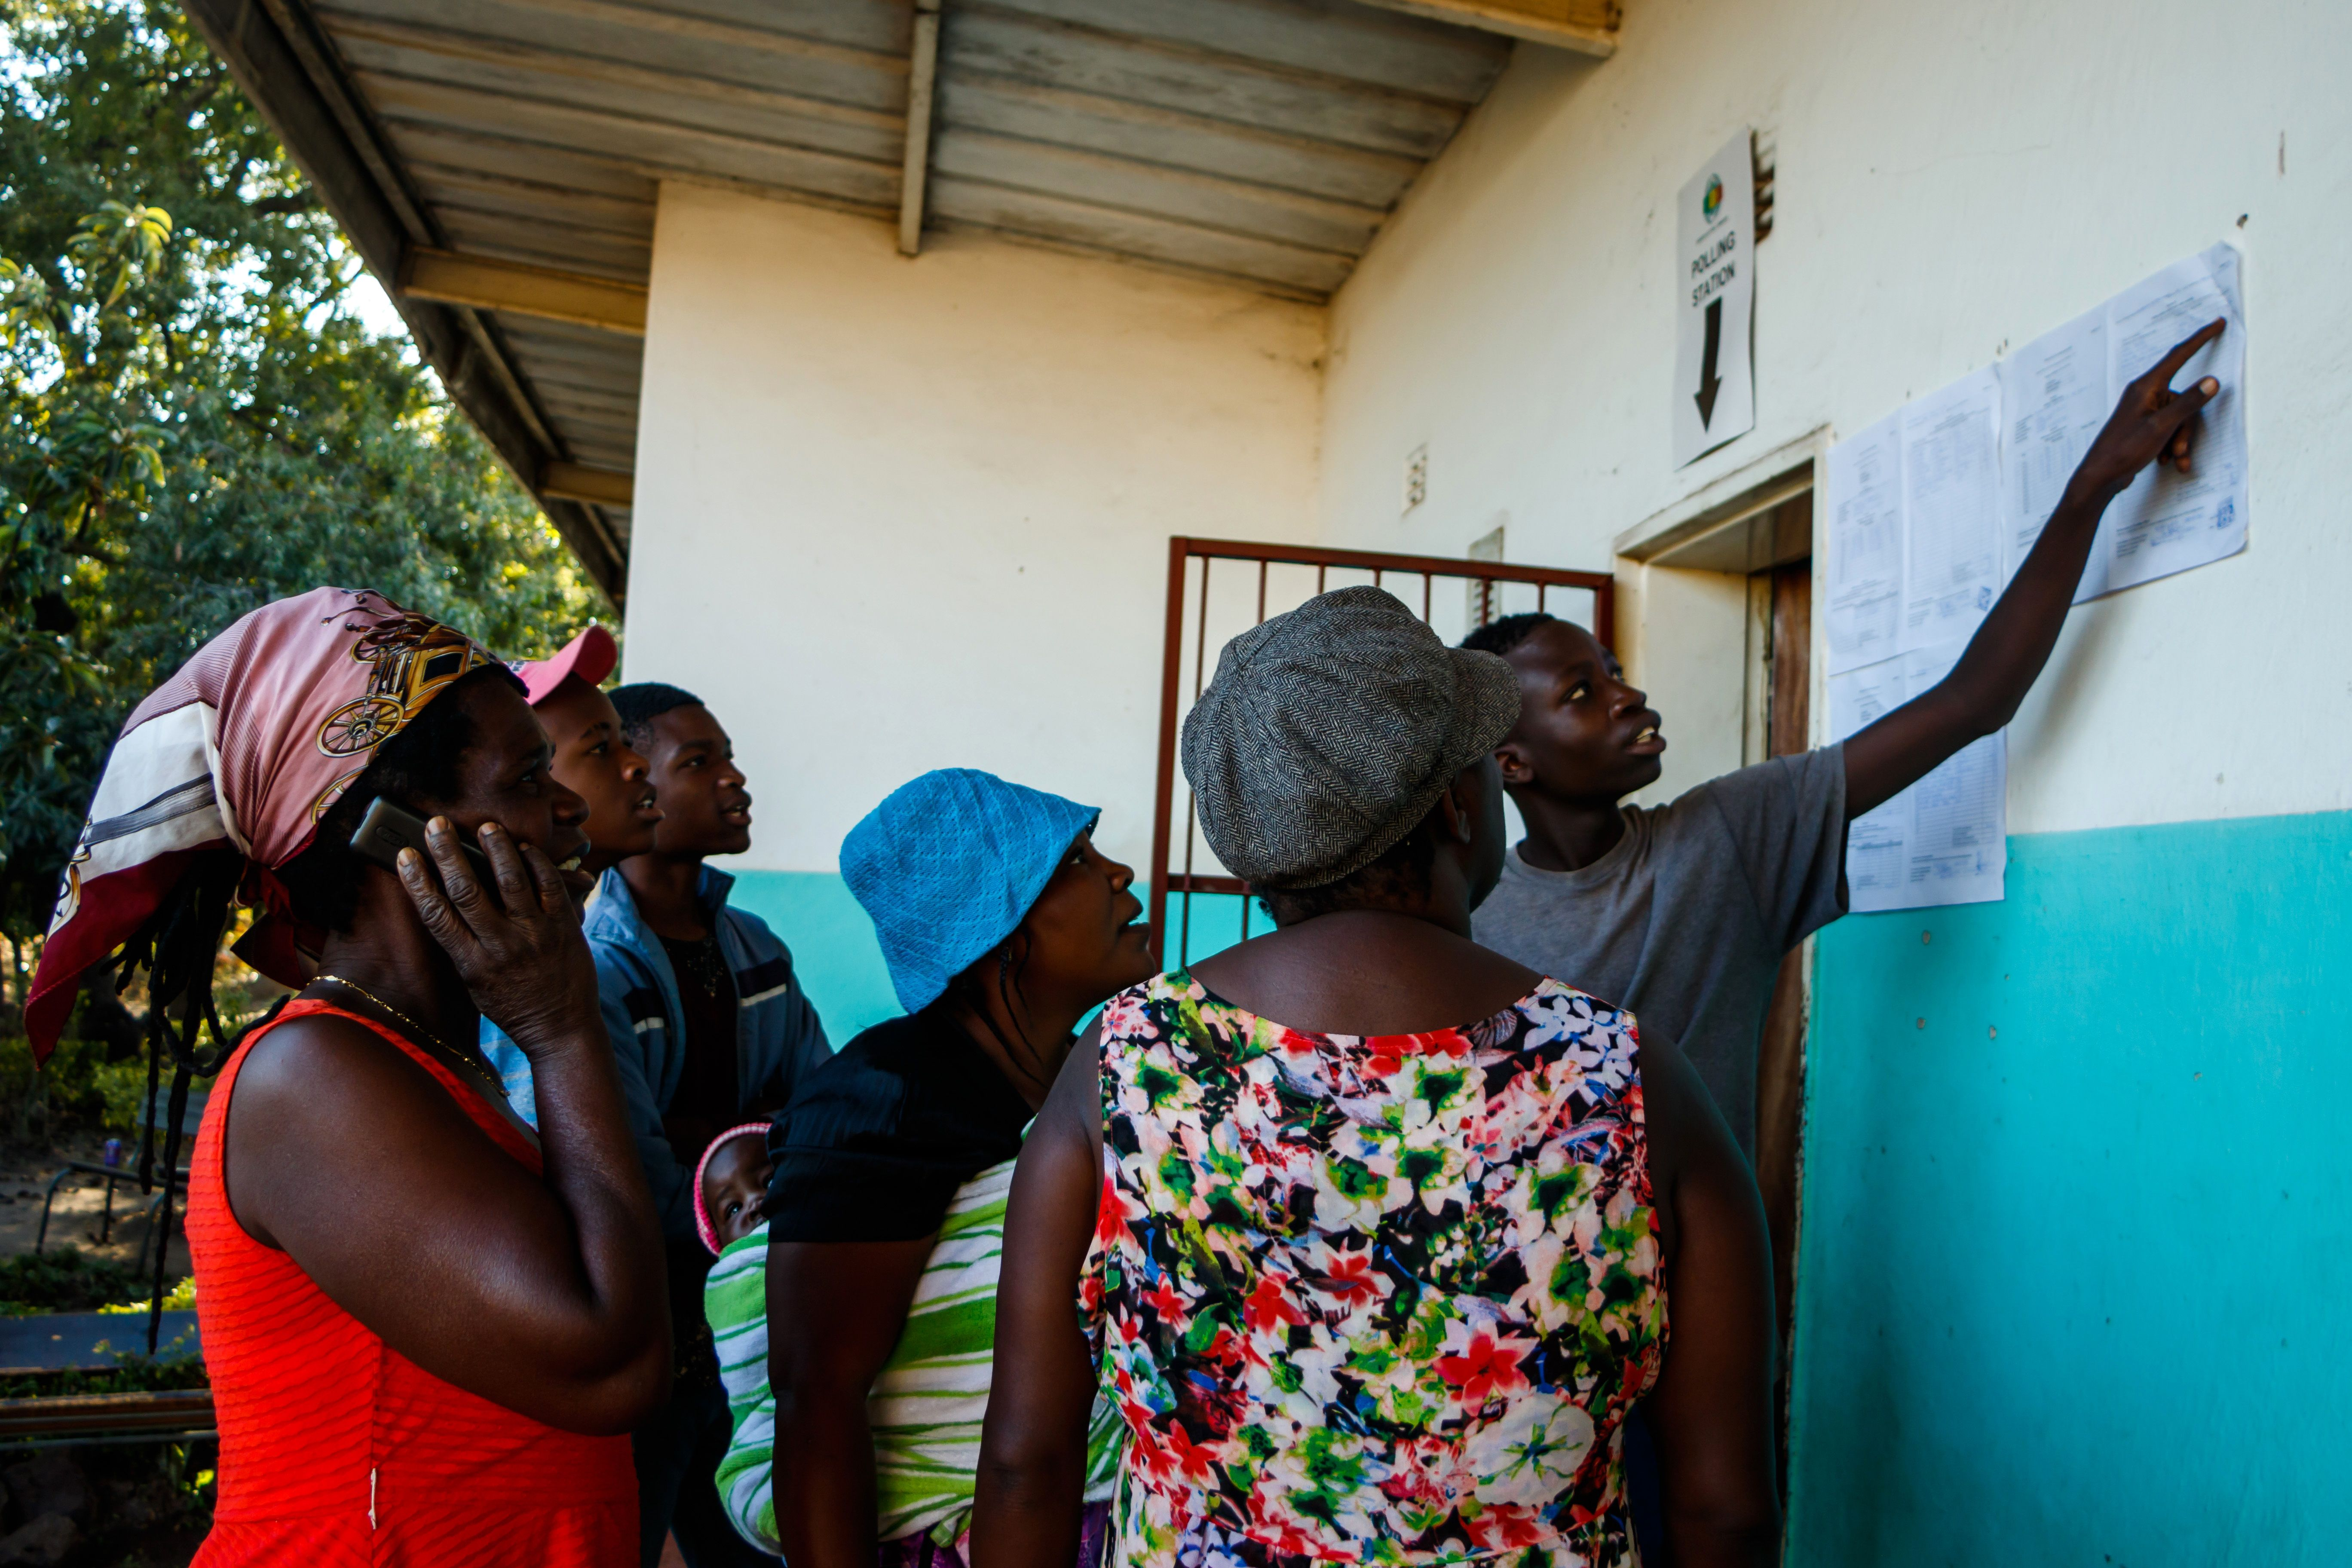 People gather a day after elections to look at results posted outside a polling station in Harare, Zimbabwe on July 31 2018.